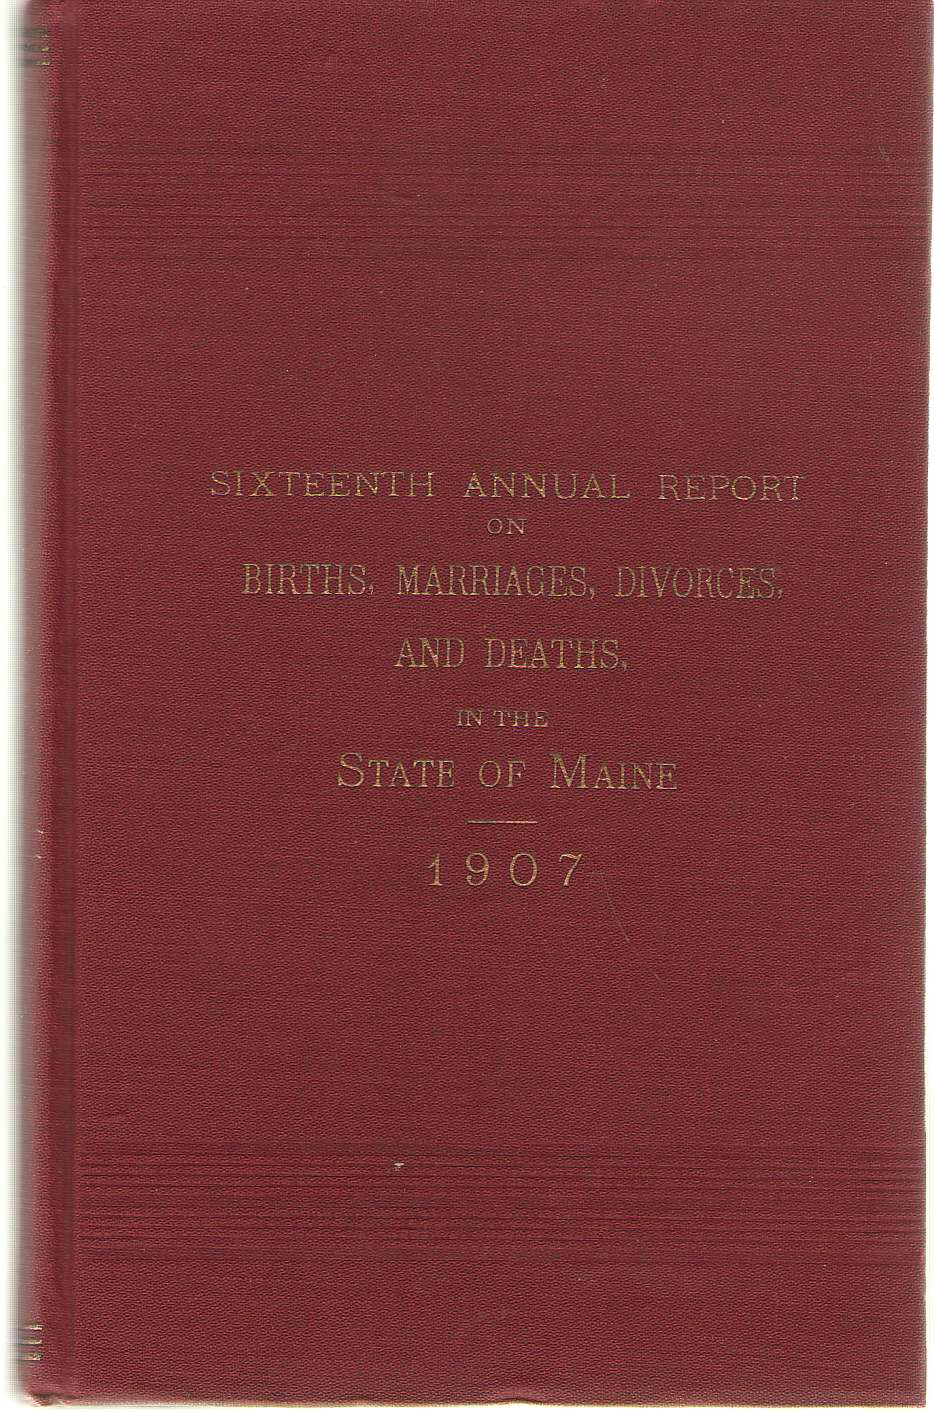 Sixteenth Annual Report On Births, Marriages, Divorces, And Deaths, In The State Of Maine For The Year Ending December 31, 1907, No Author Noted